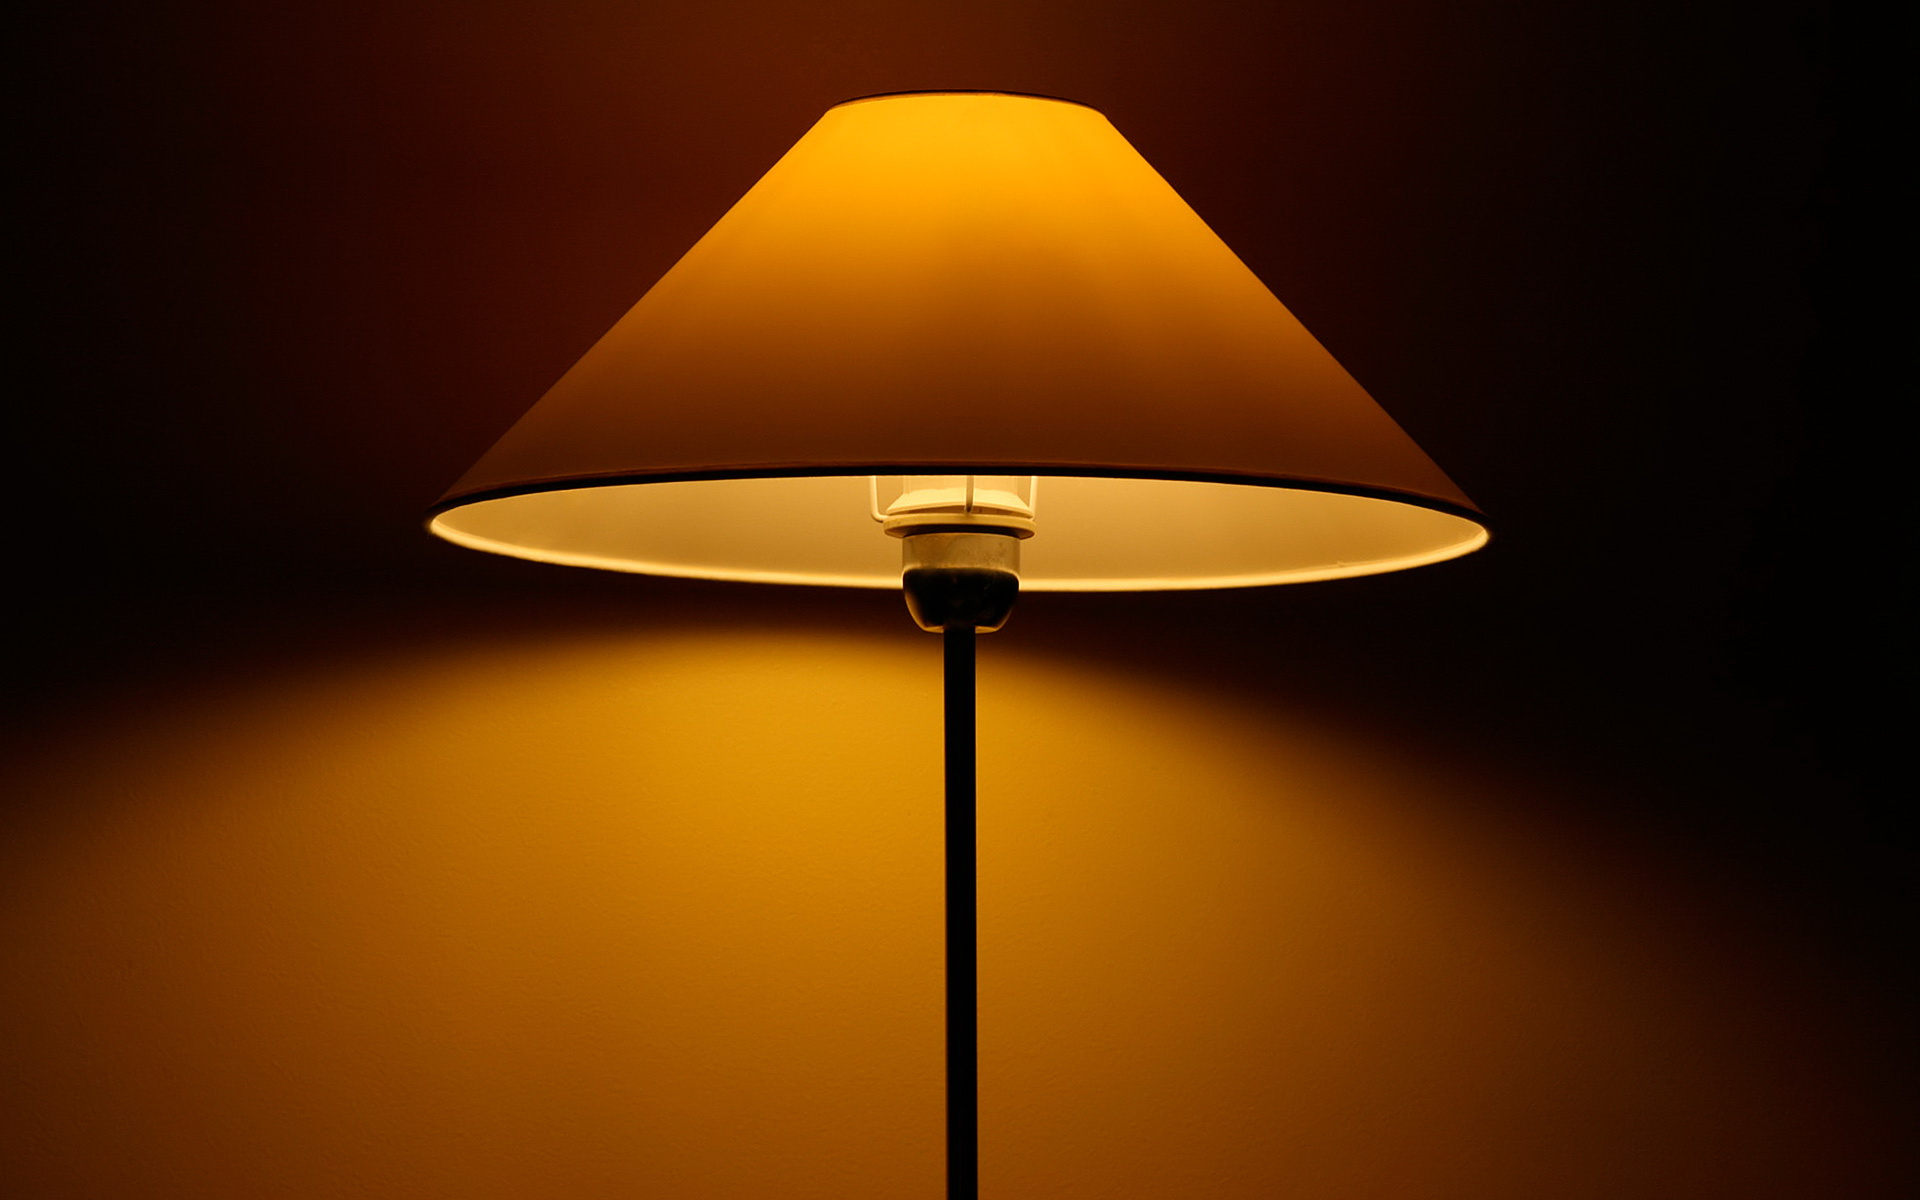 Lamp Verlichting 24 Wonderful Hd Lamp Wallpapers Hdwallsource